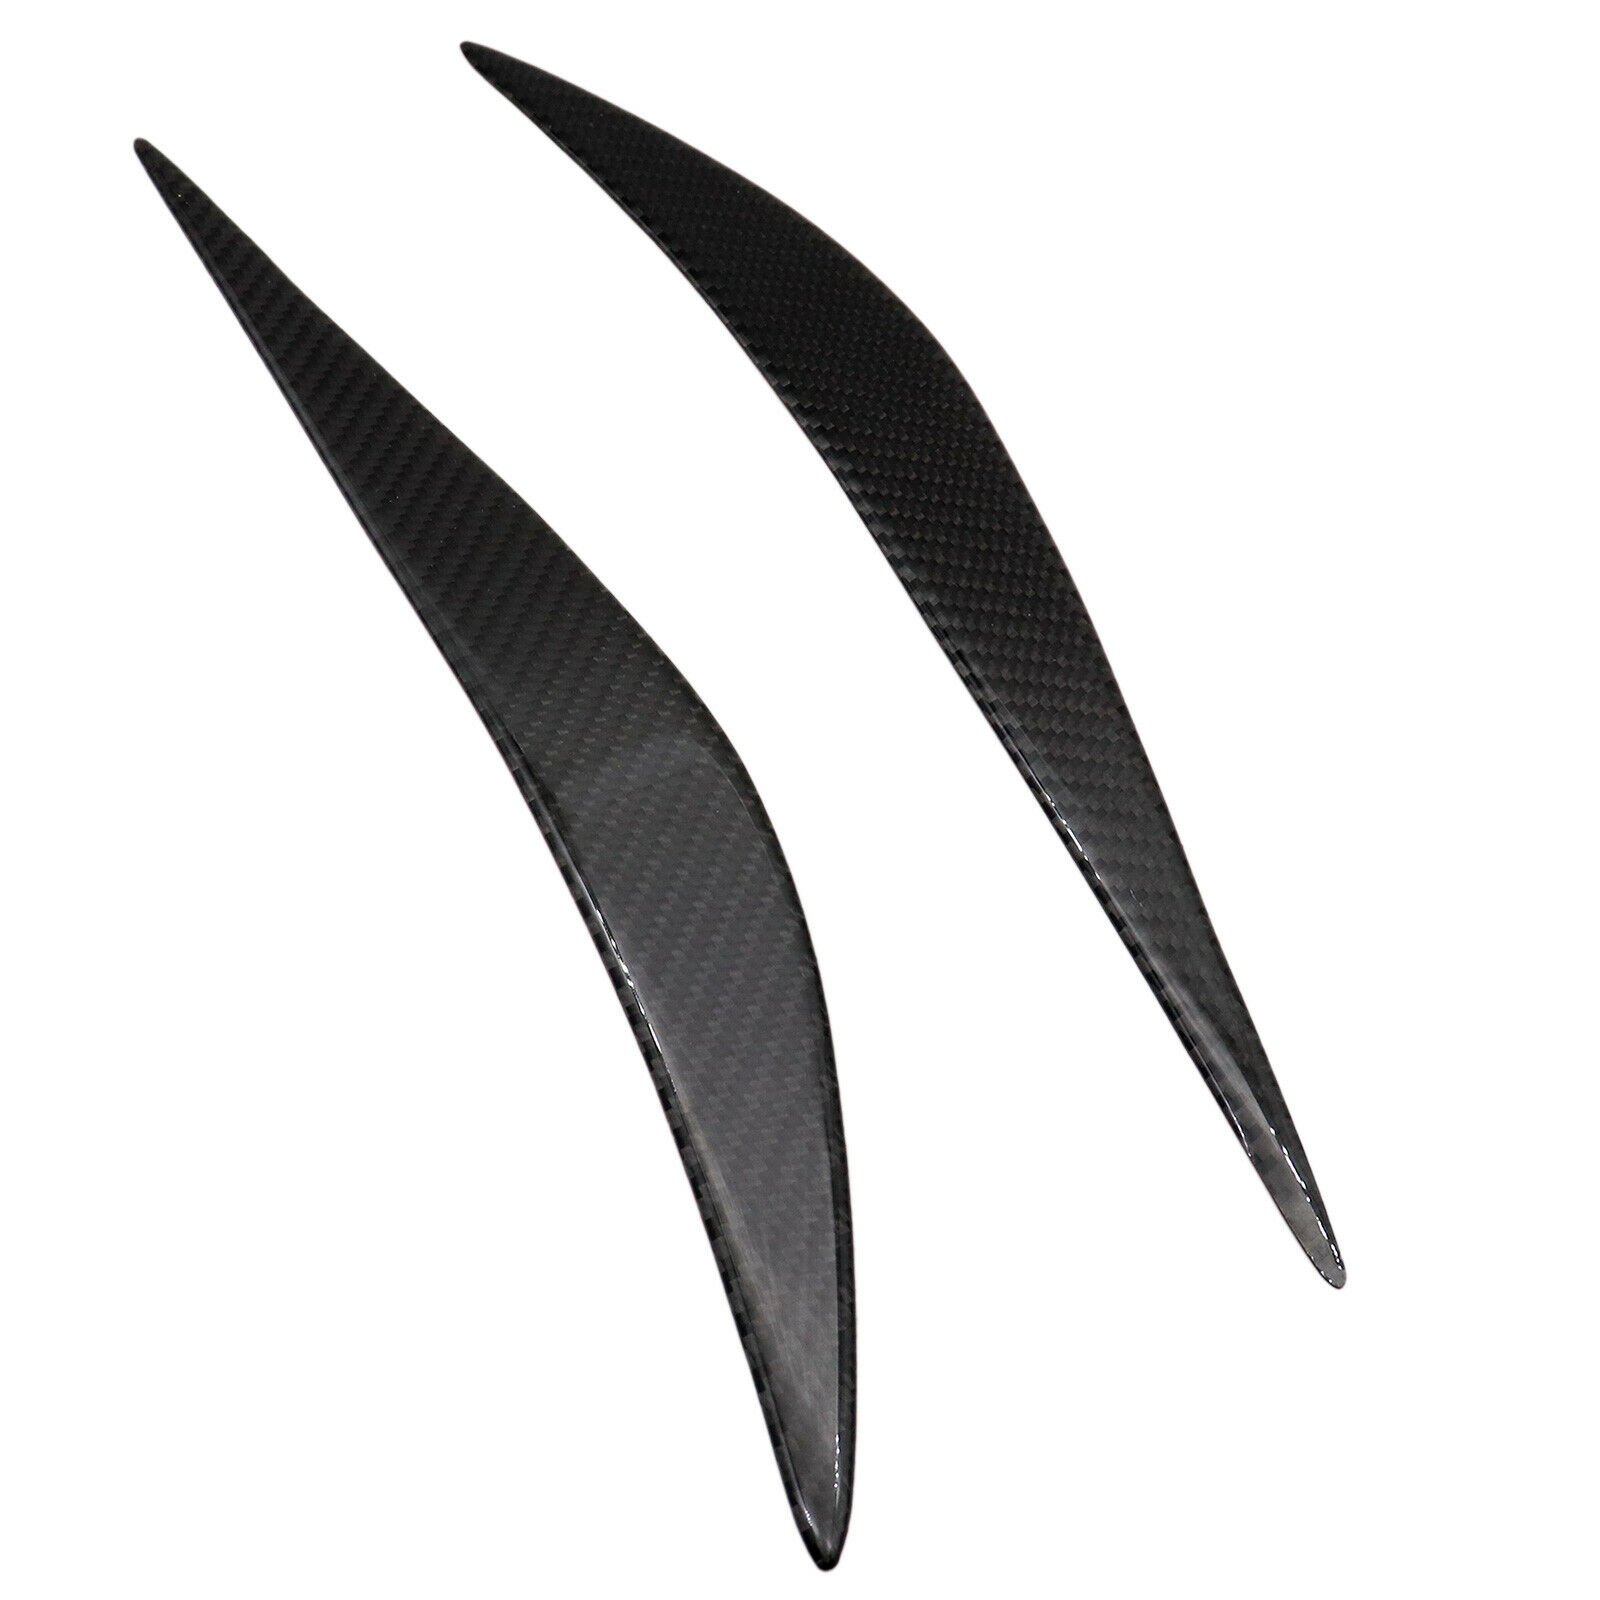 1 Pair Carbon Fiber Headlight Eye Lid Cover Eyebrows For F32 F33 F36 2012-2018 Carbon black